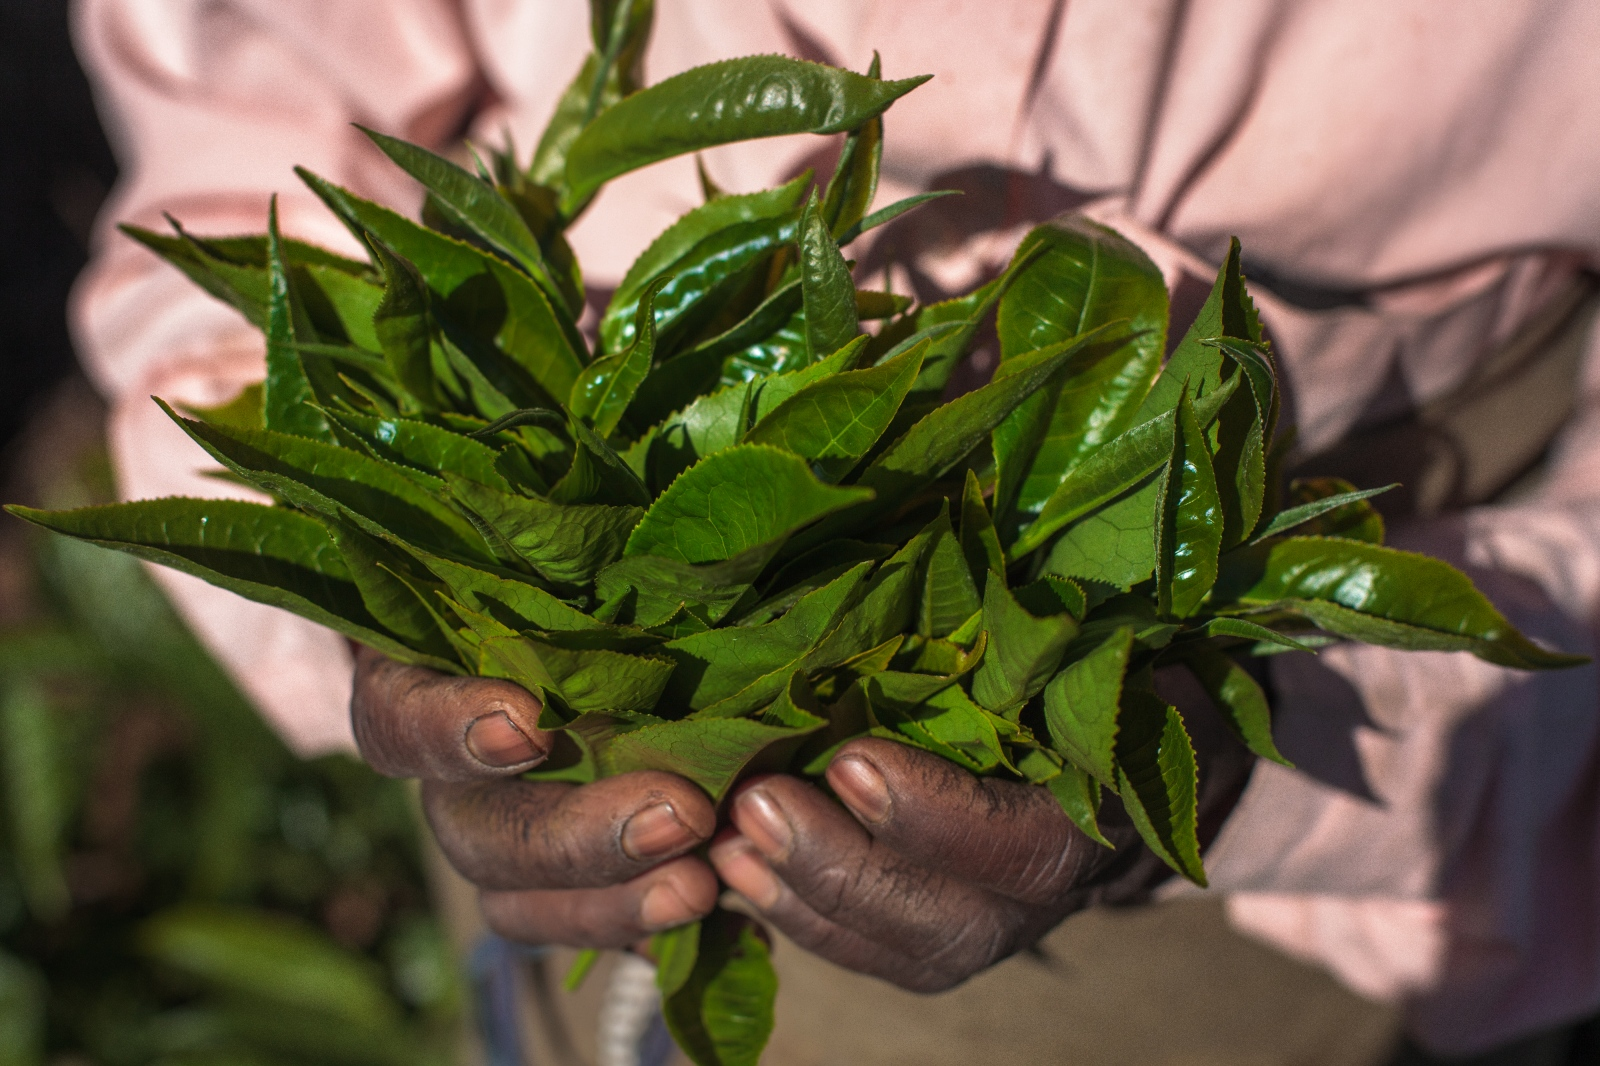 A tea plucker holds plucked tea leaves at the Craigmore tea plantations located in India's Nilgiri Hills. These leaves go into making green tea. Most of these tea leaves will be supplied to major companies such as PG Tips and Lipton.